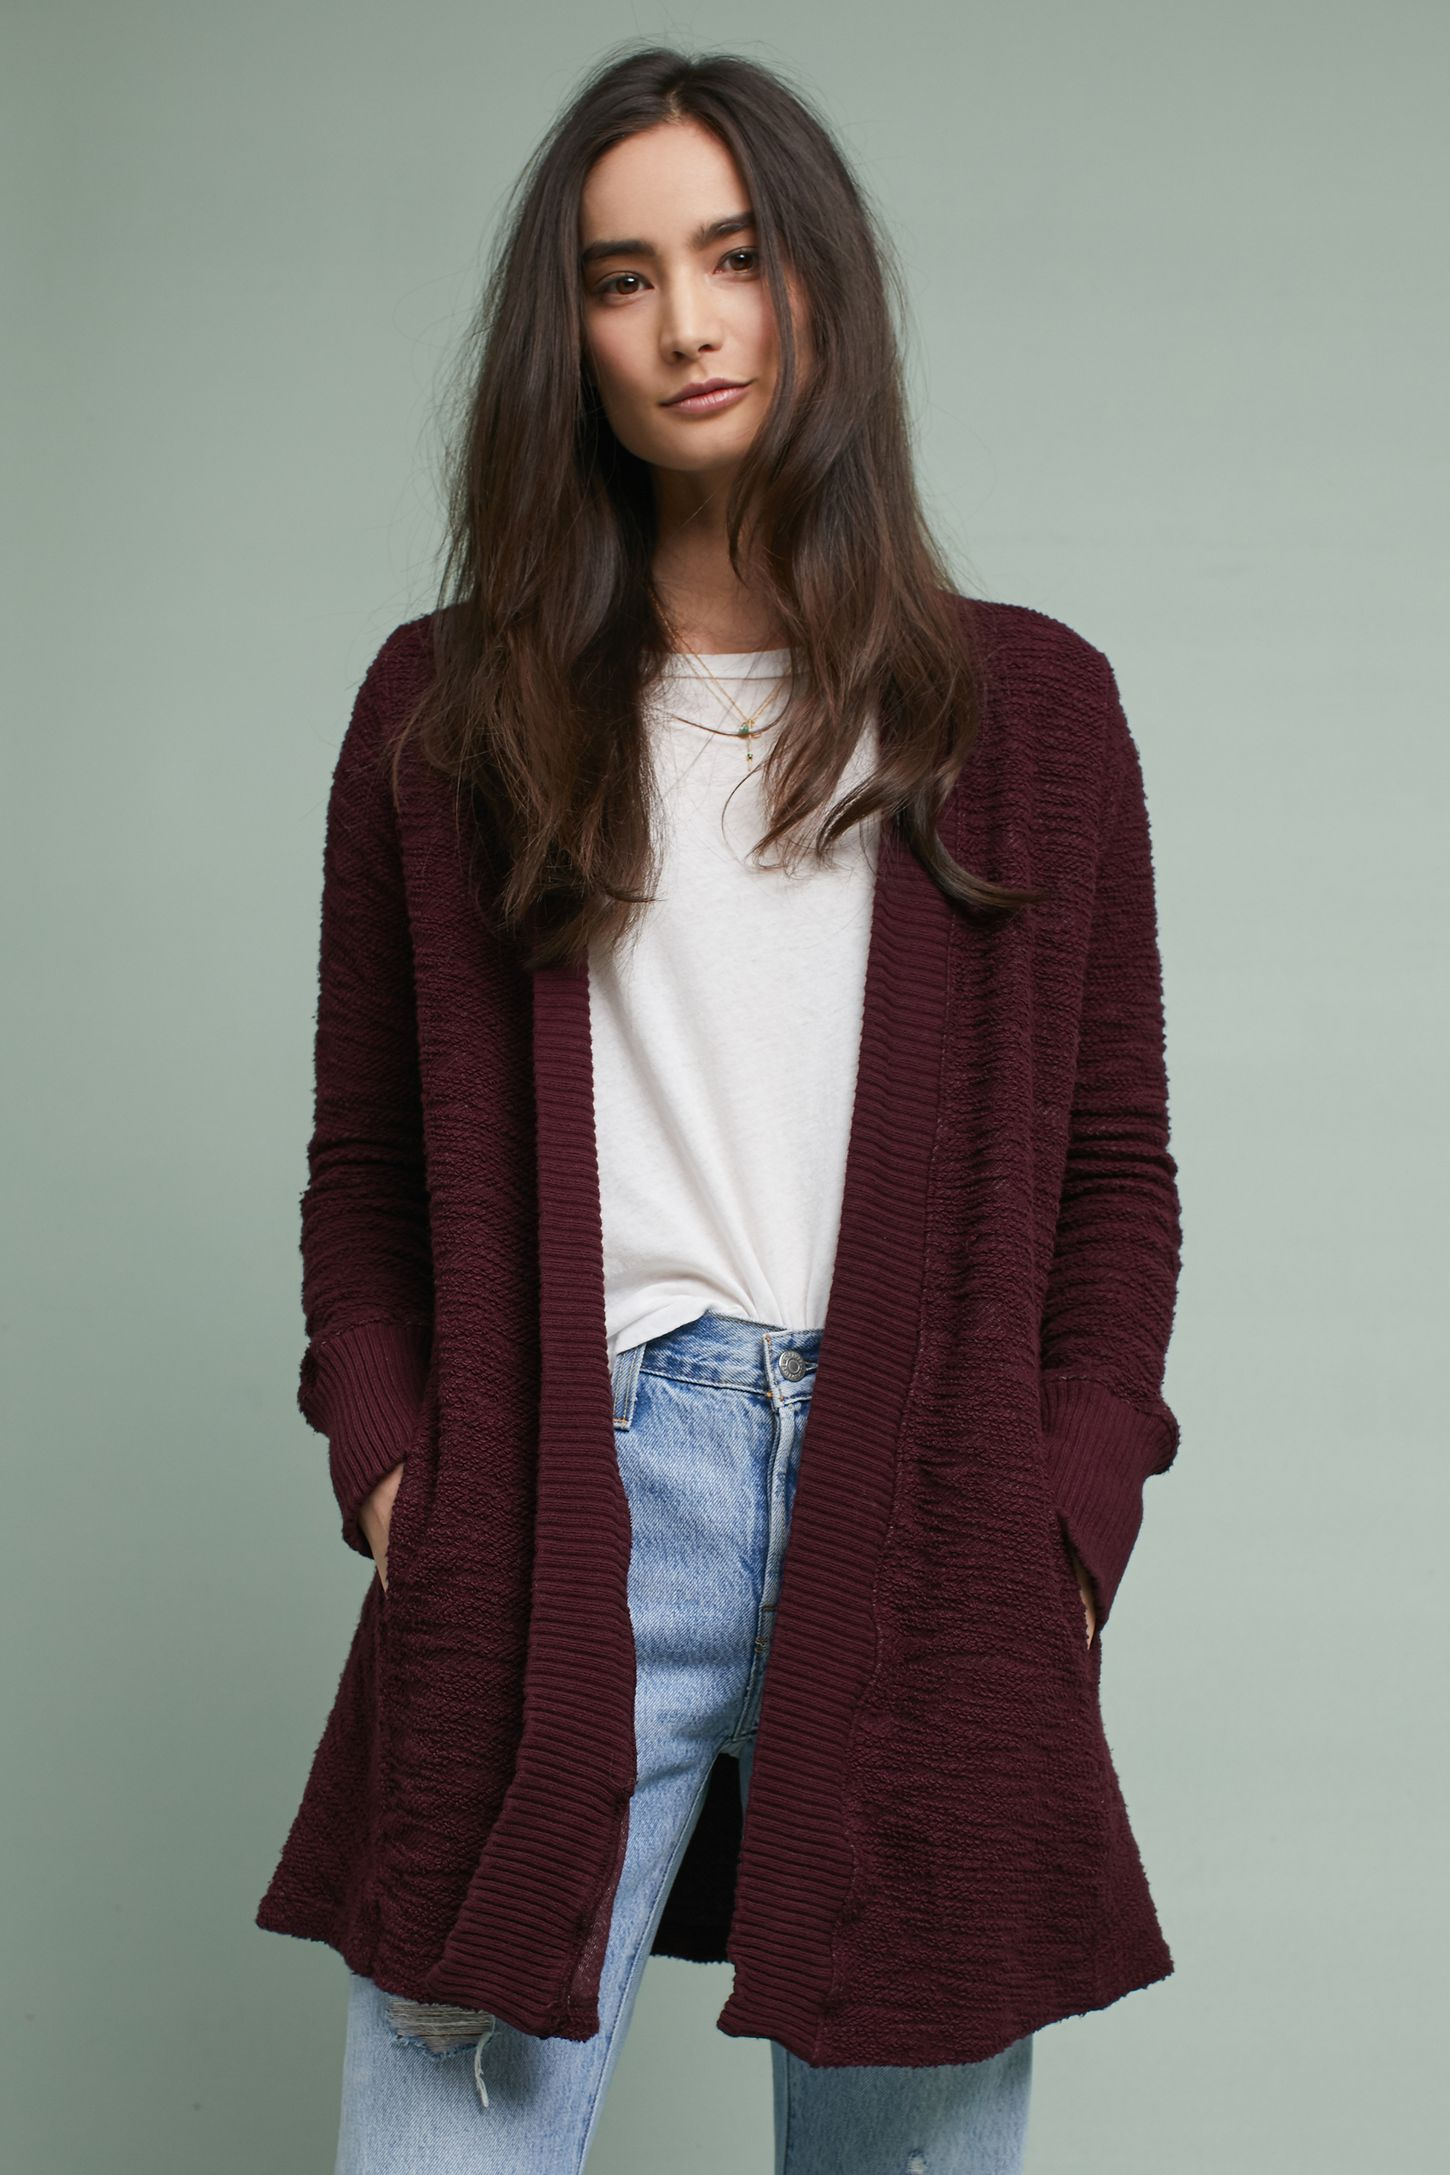 Cardigan Sweaters & Duster Cardigans | Anthropologie